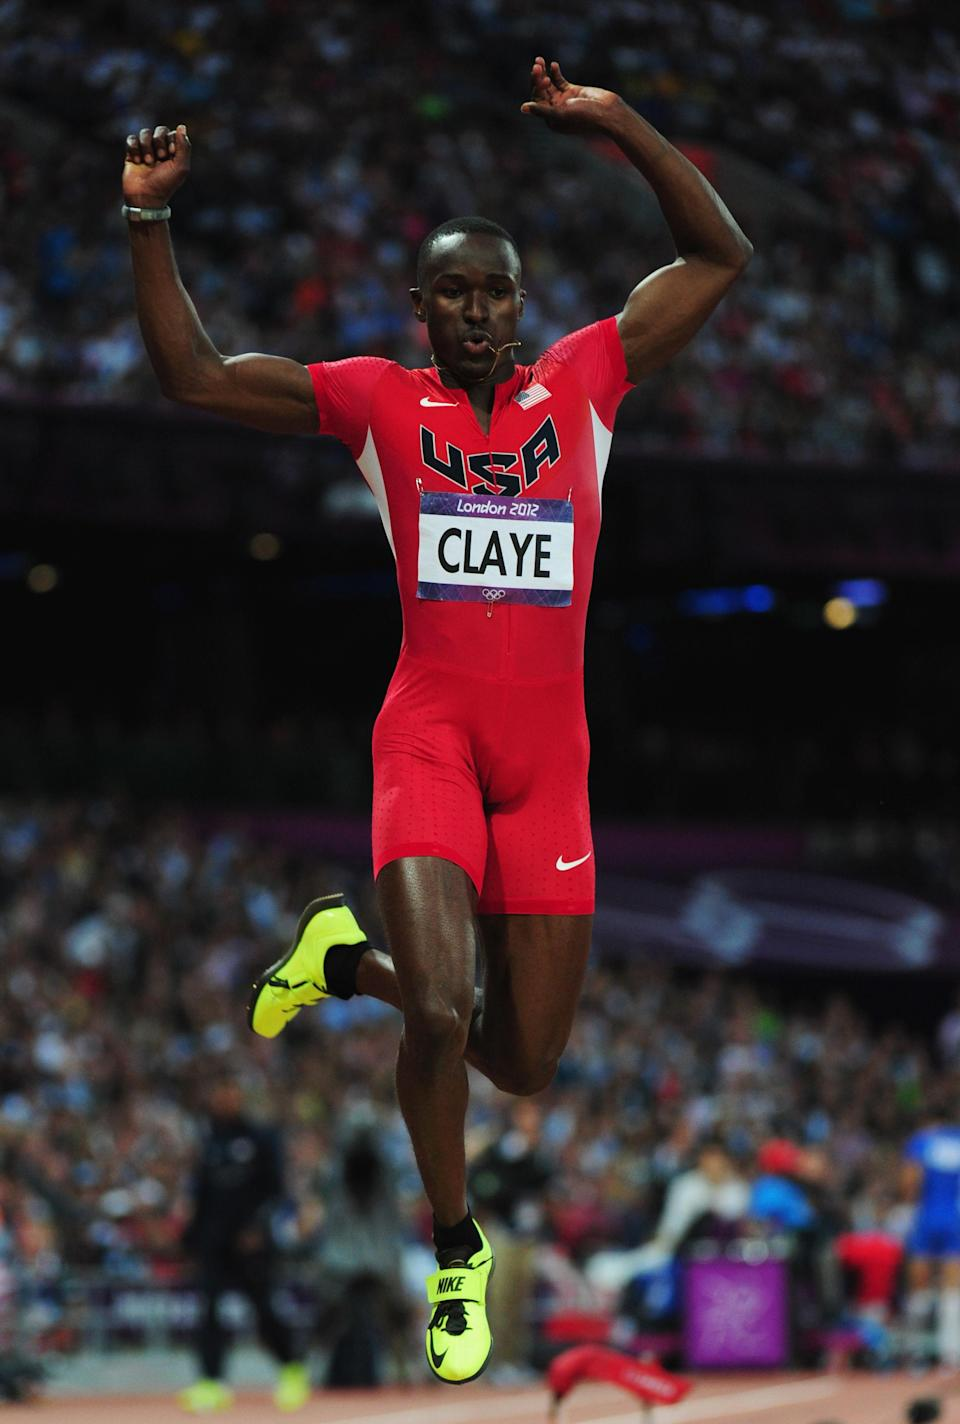 LONDON, ENGLAND - AUGUST 09: Will Claye of the United States competes during the Men's Triple Jump Final on Day 13 of the London 2012 Olympic Games at Olympic Stadium on August 9, 2012 in London, England. (Photo by Stu Forster/Getty Images)